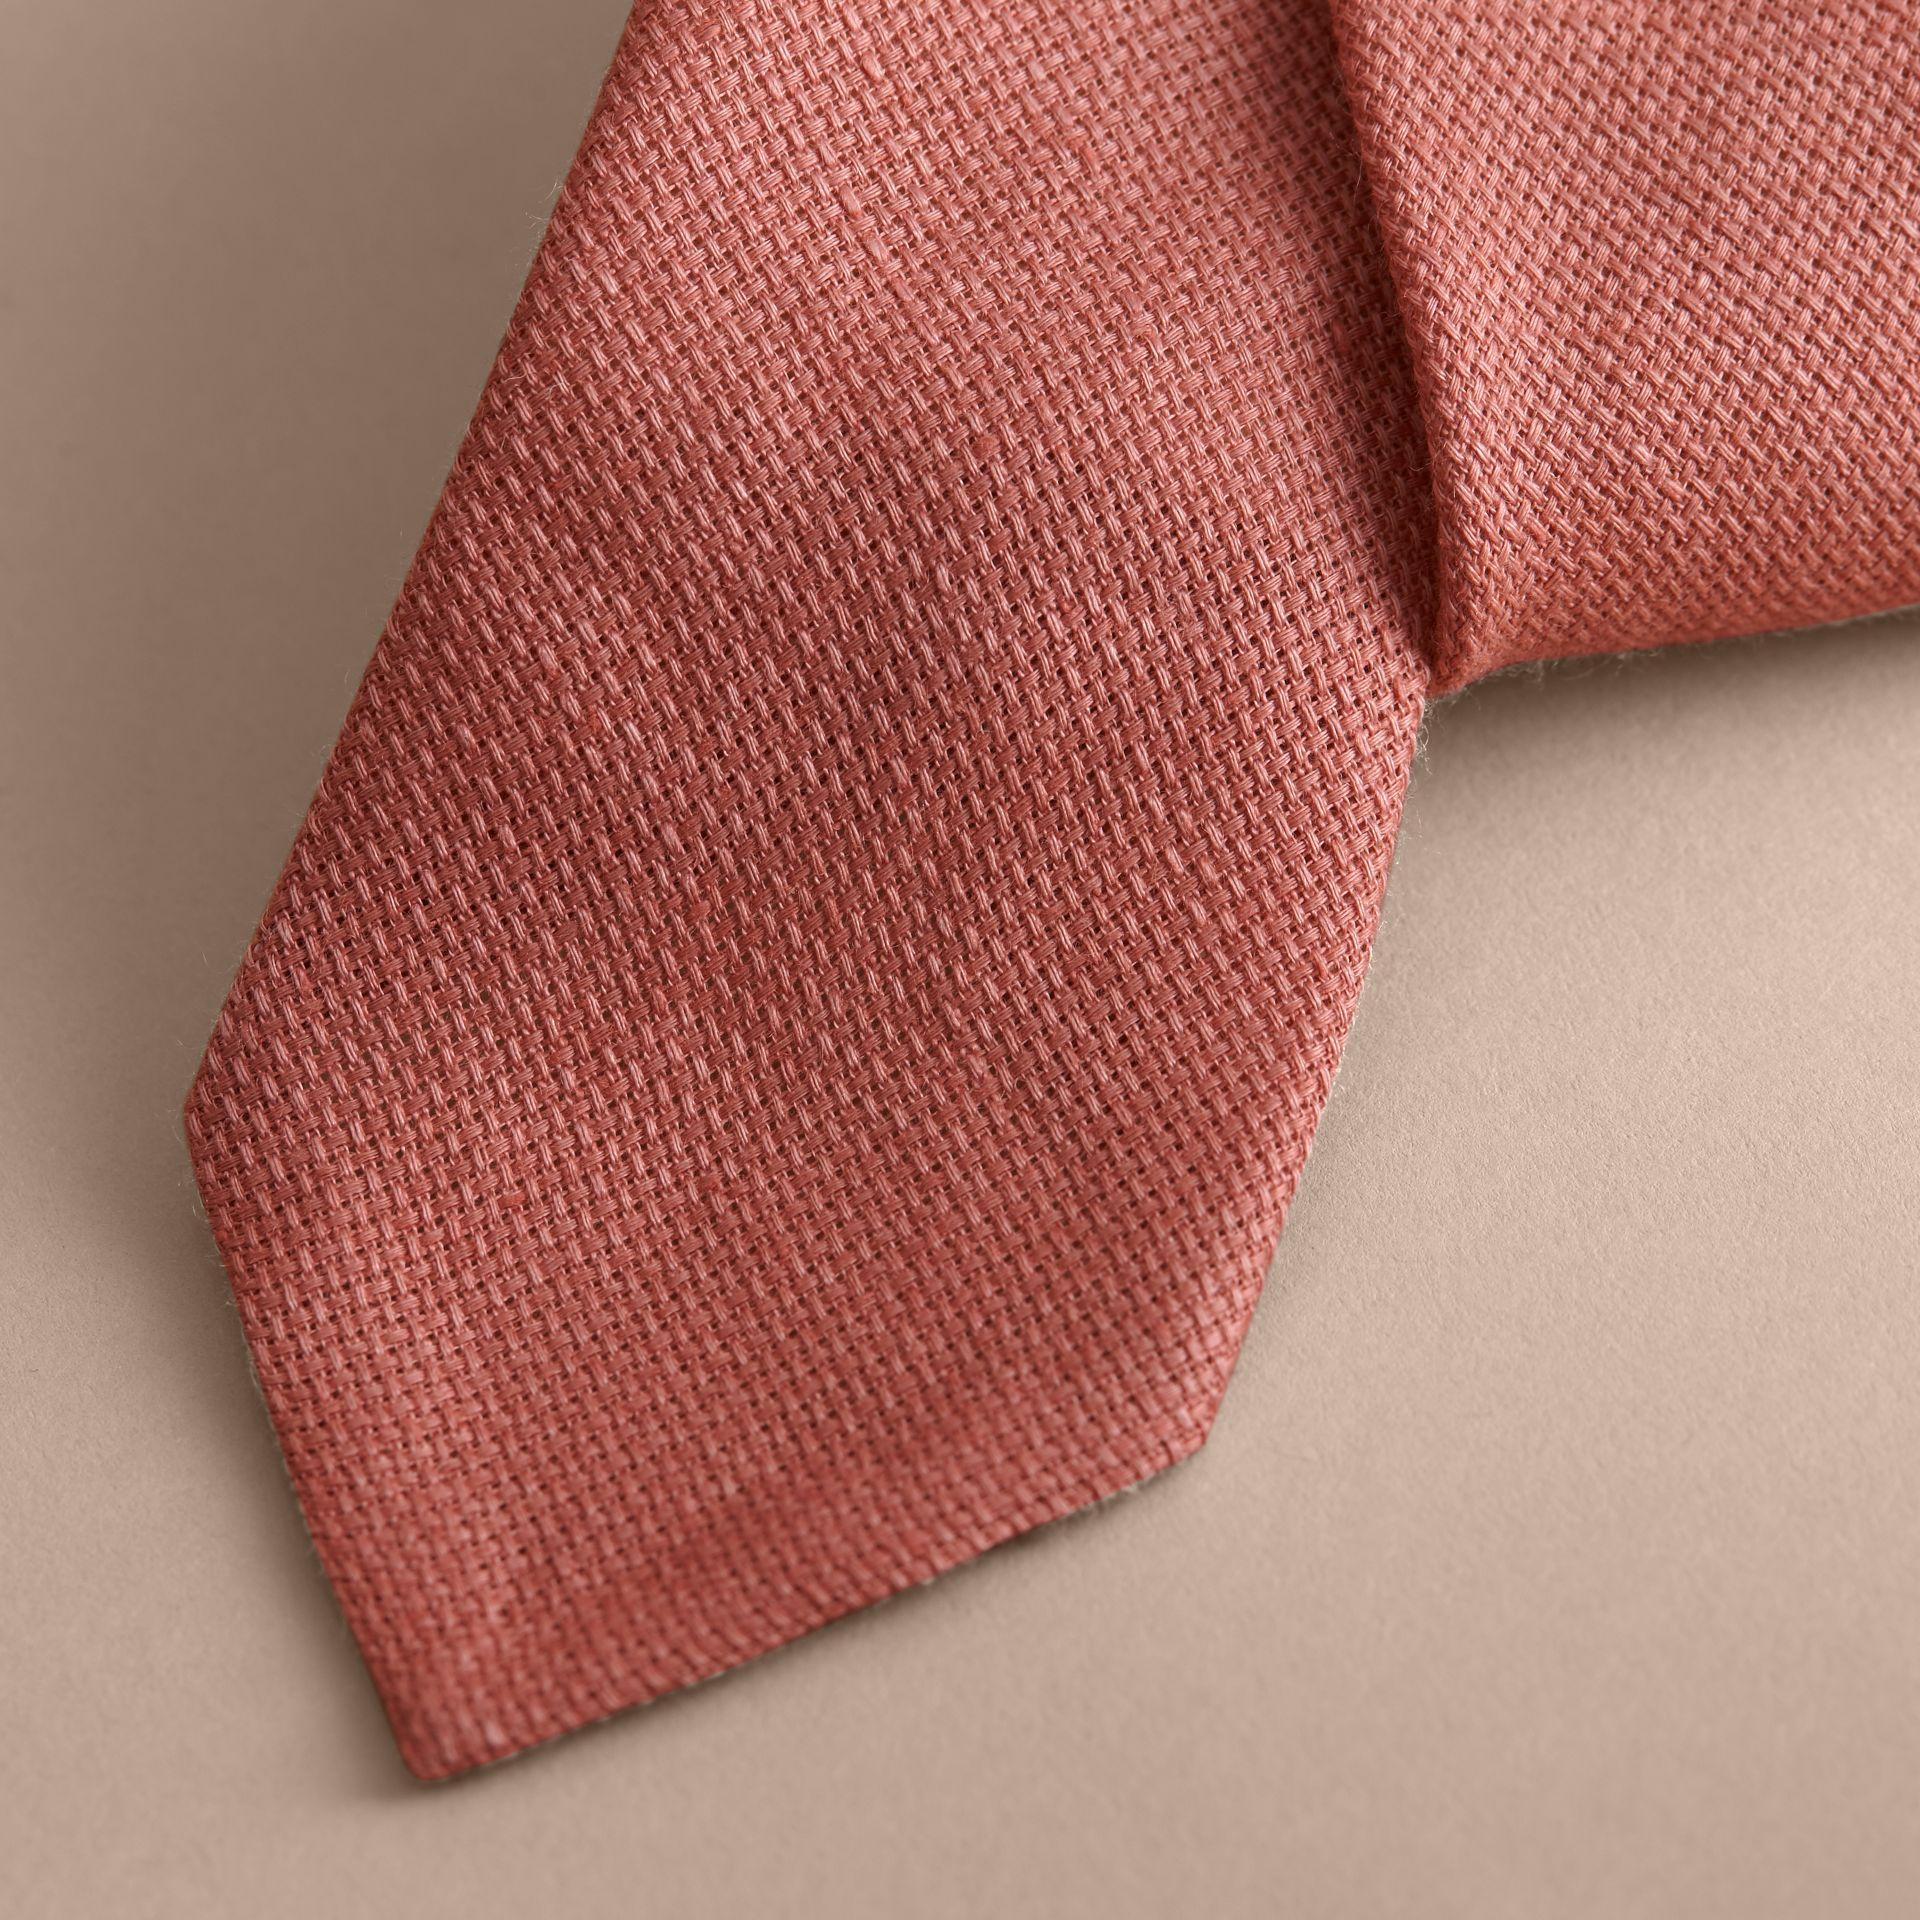 Modern Cut Linen Tie in Pale Cinnamon - Men | Burberry Hong Kong - gallery image 2